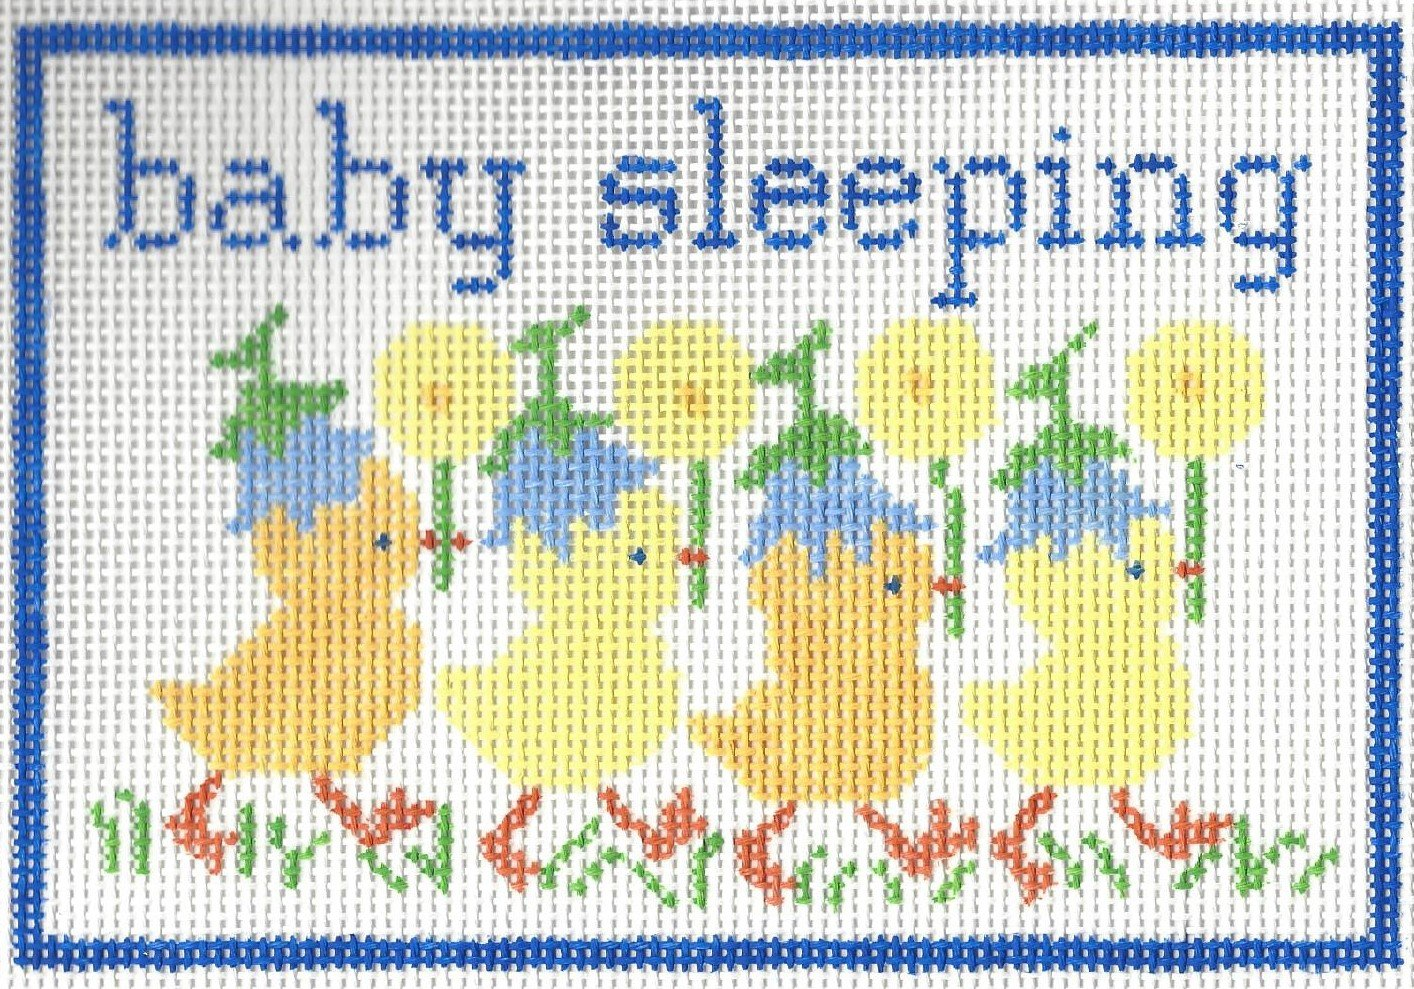 Baby Sleeping with Ducks - Blue